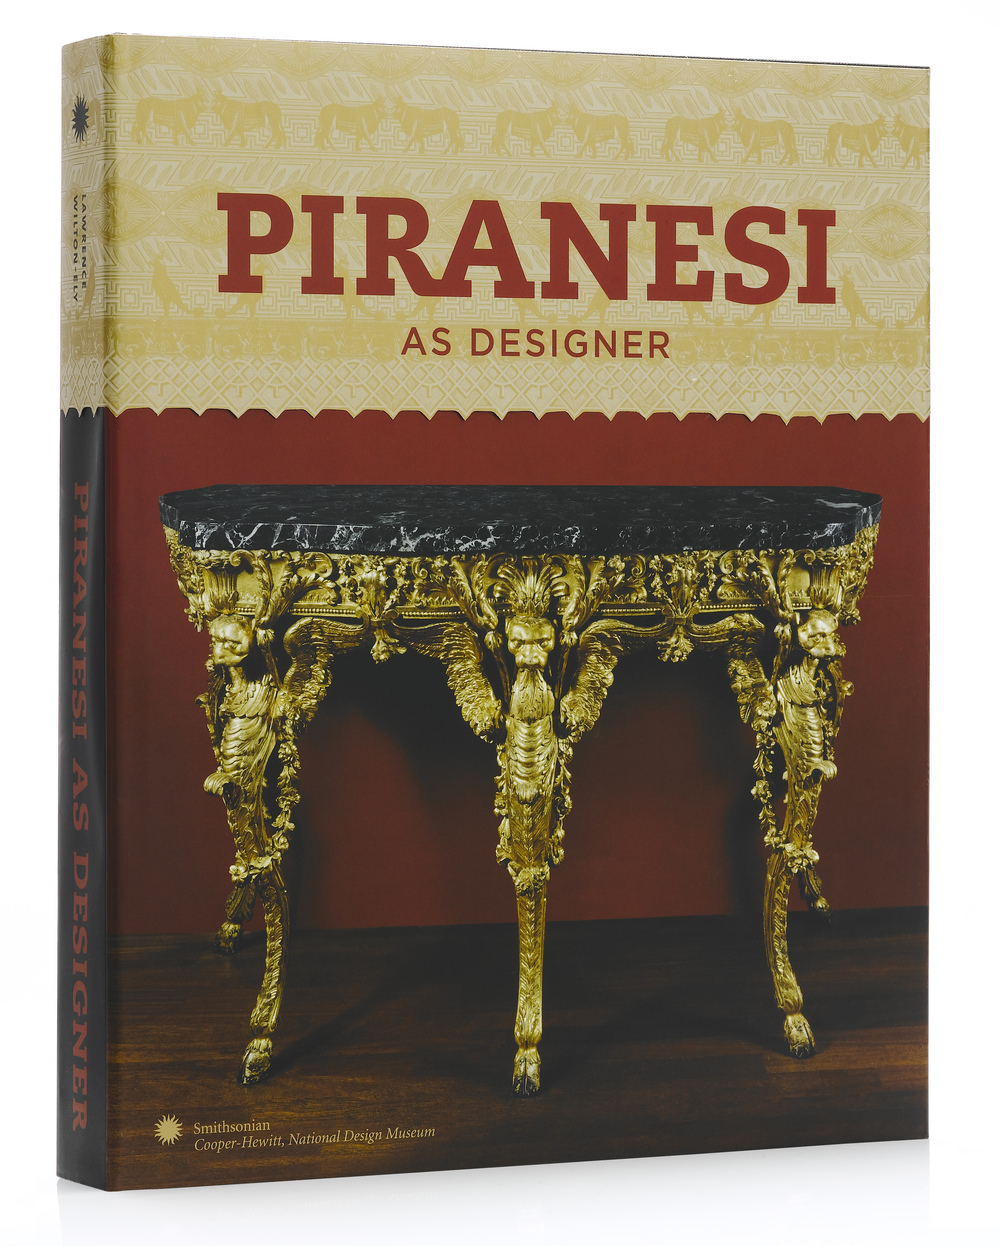 piranesi as designer cover_BEH.jpg